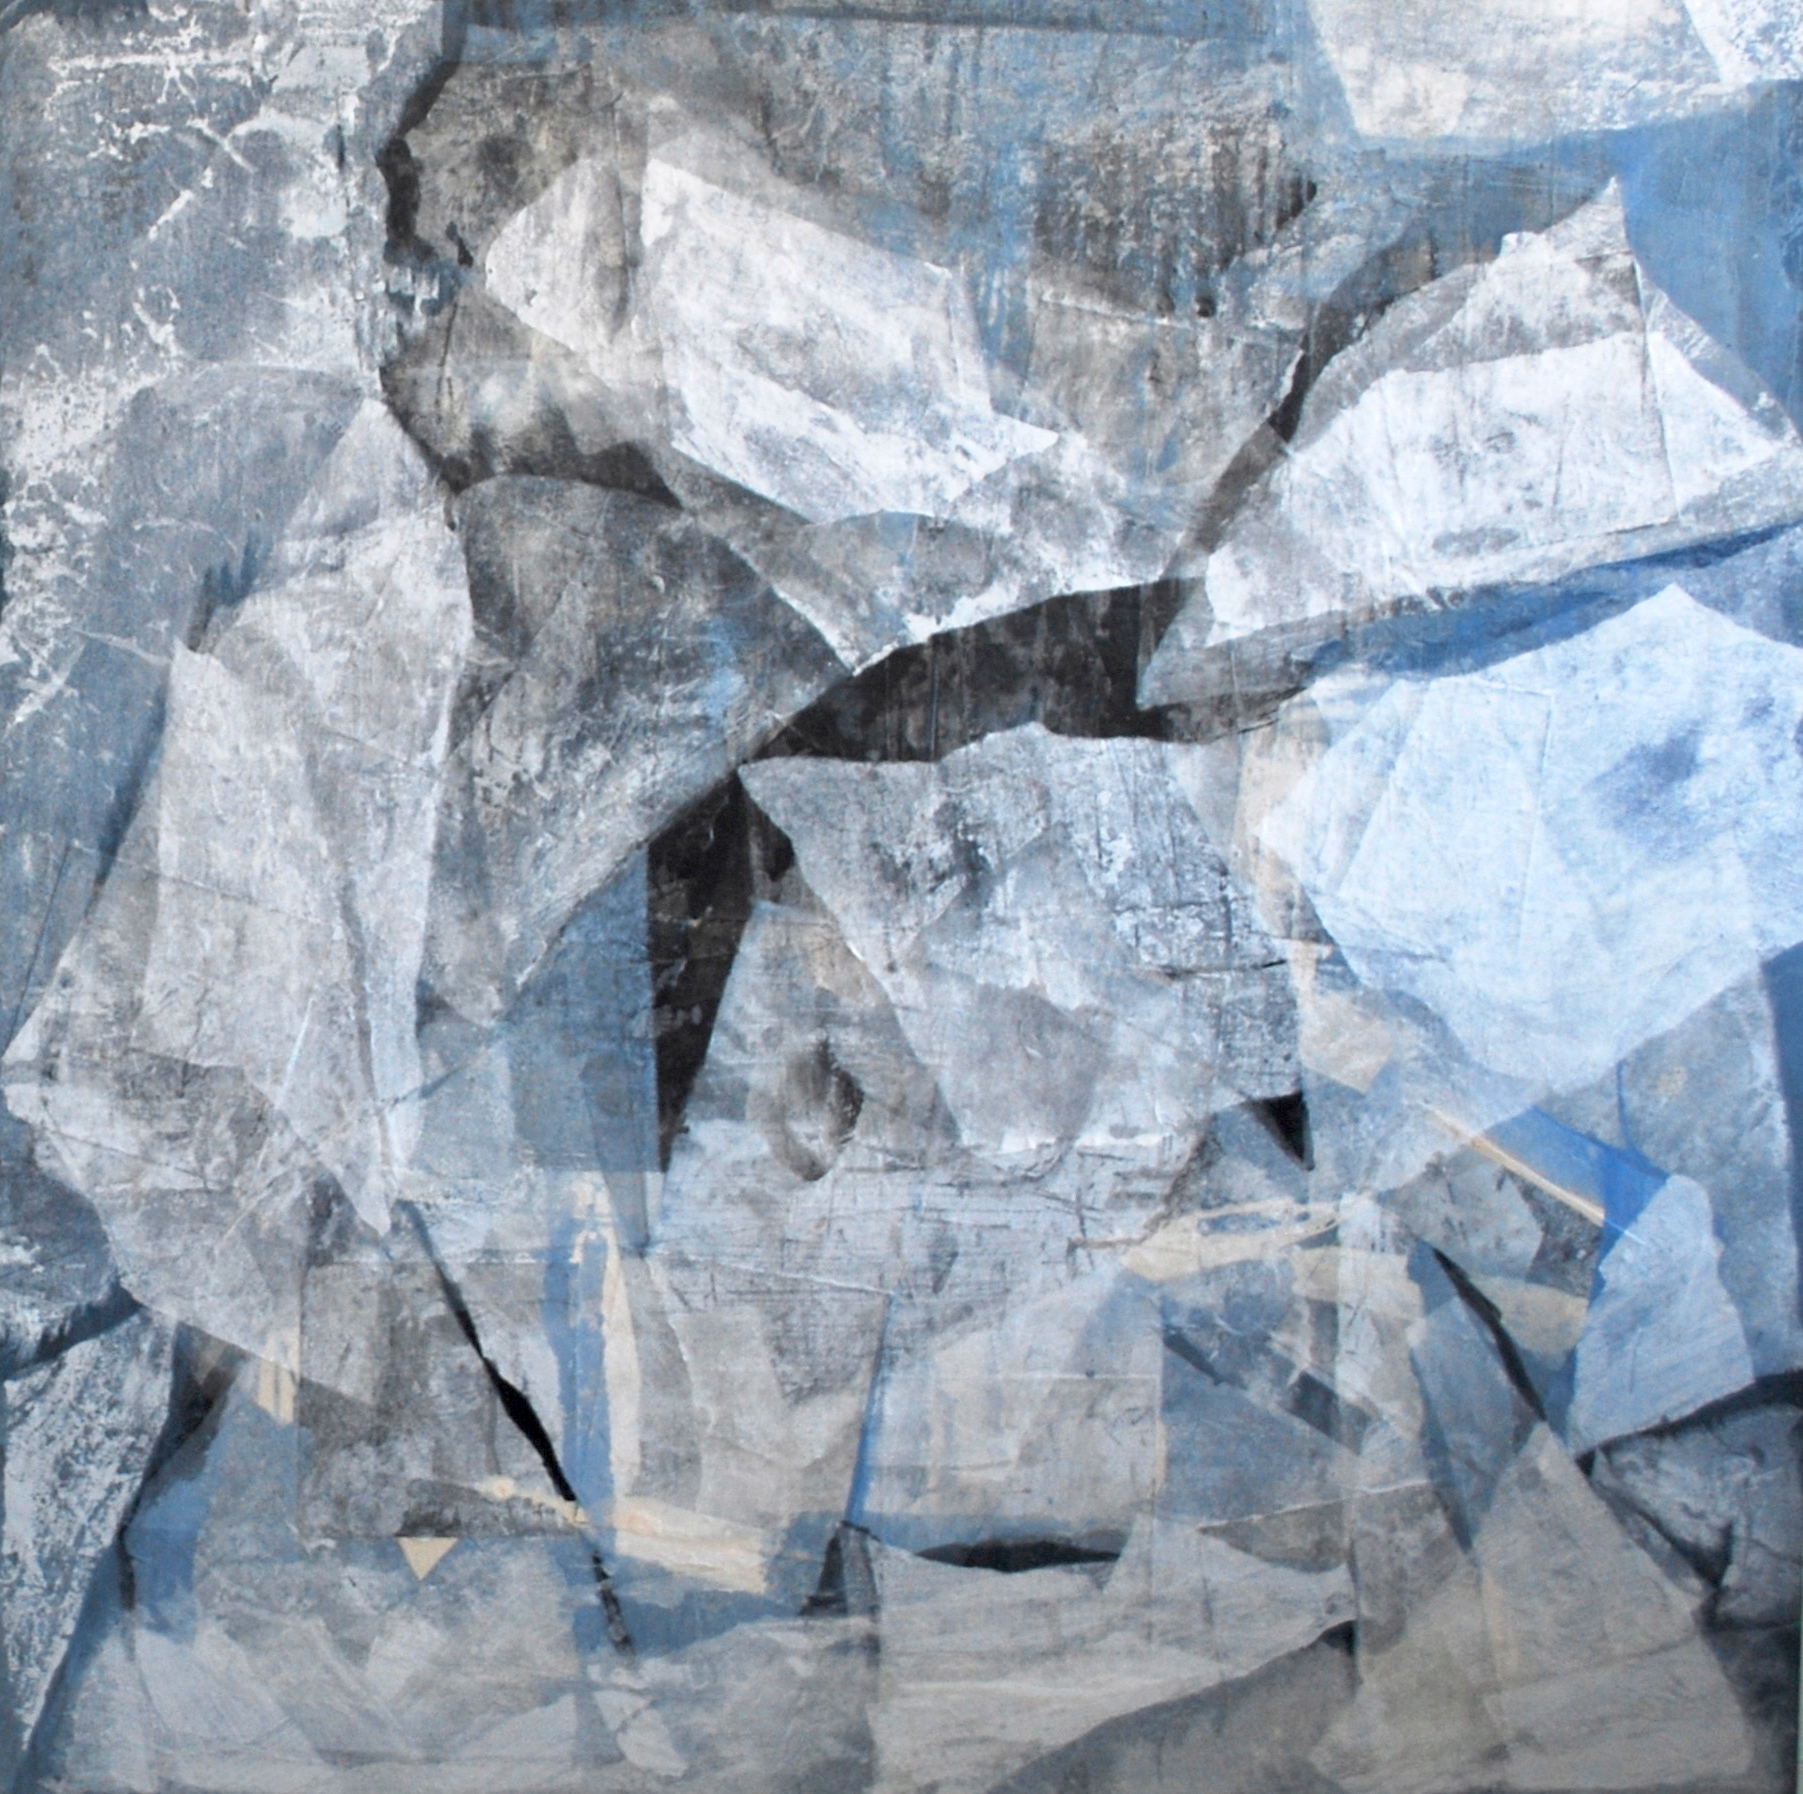 SoHyun Bae, Wrapped Shards #6, 2002, rice-paper and pure pigment on canvas, 60 x 60 inches